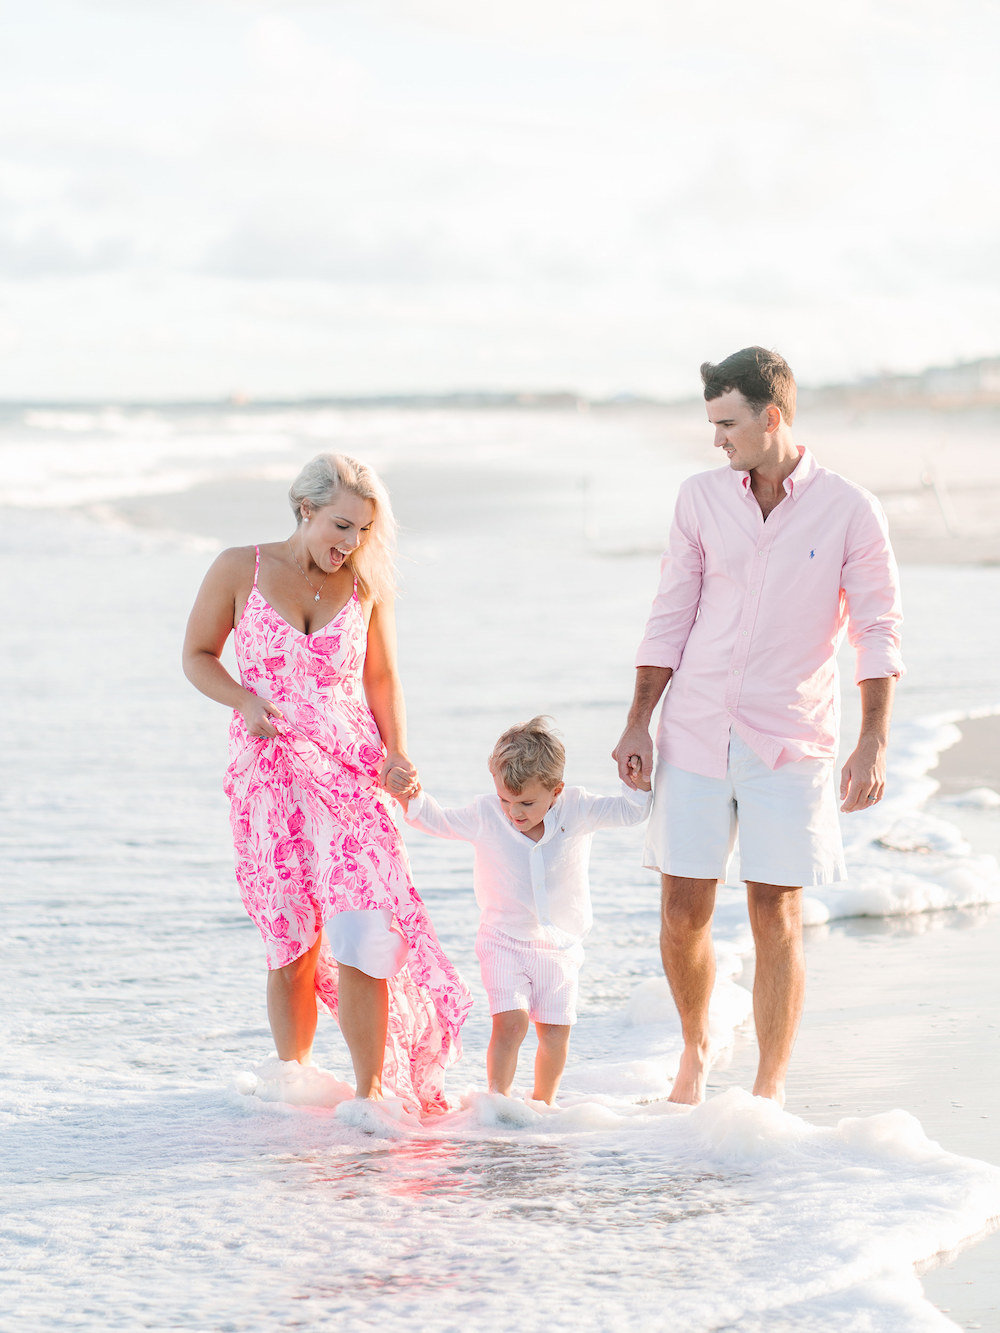 Myrtle Beach Family Photos - Myrtle Beach Photographer - Beach Family Pictures by Pasha Belman